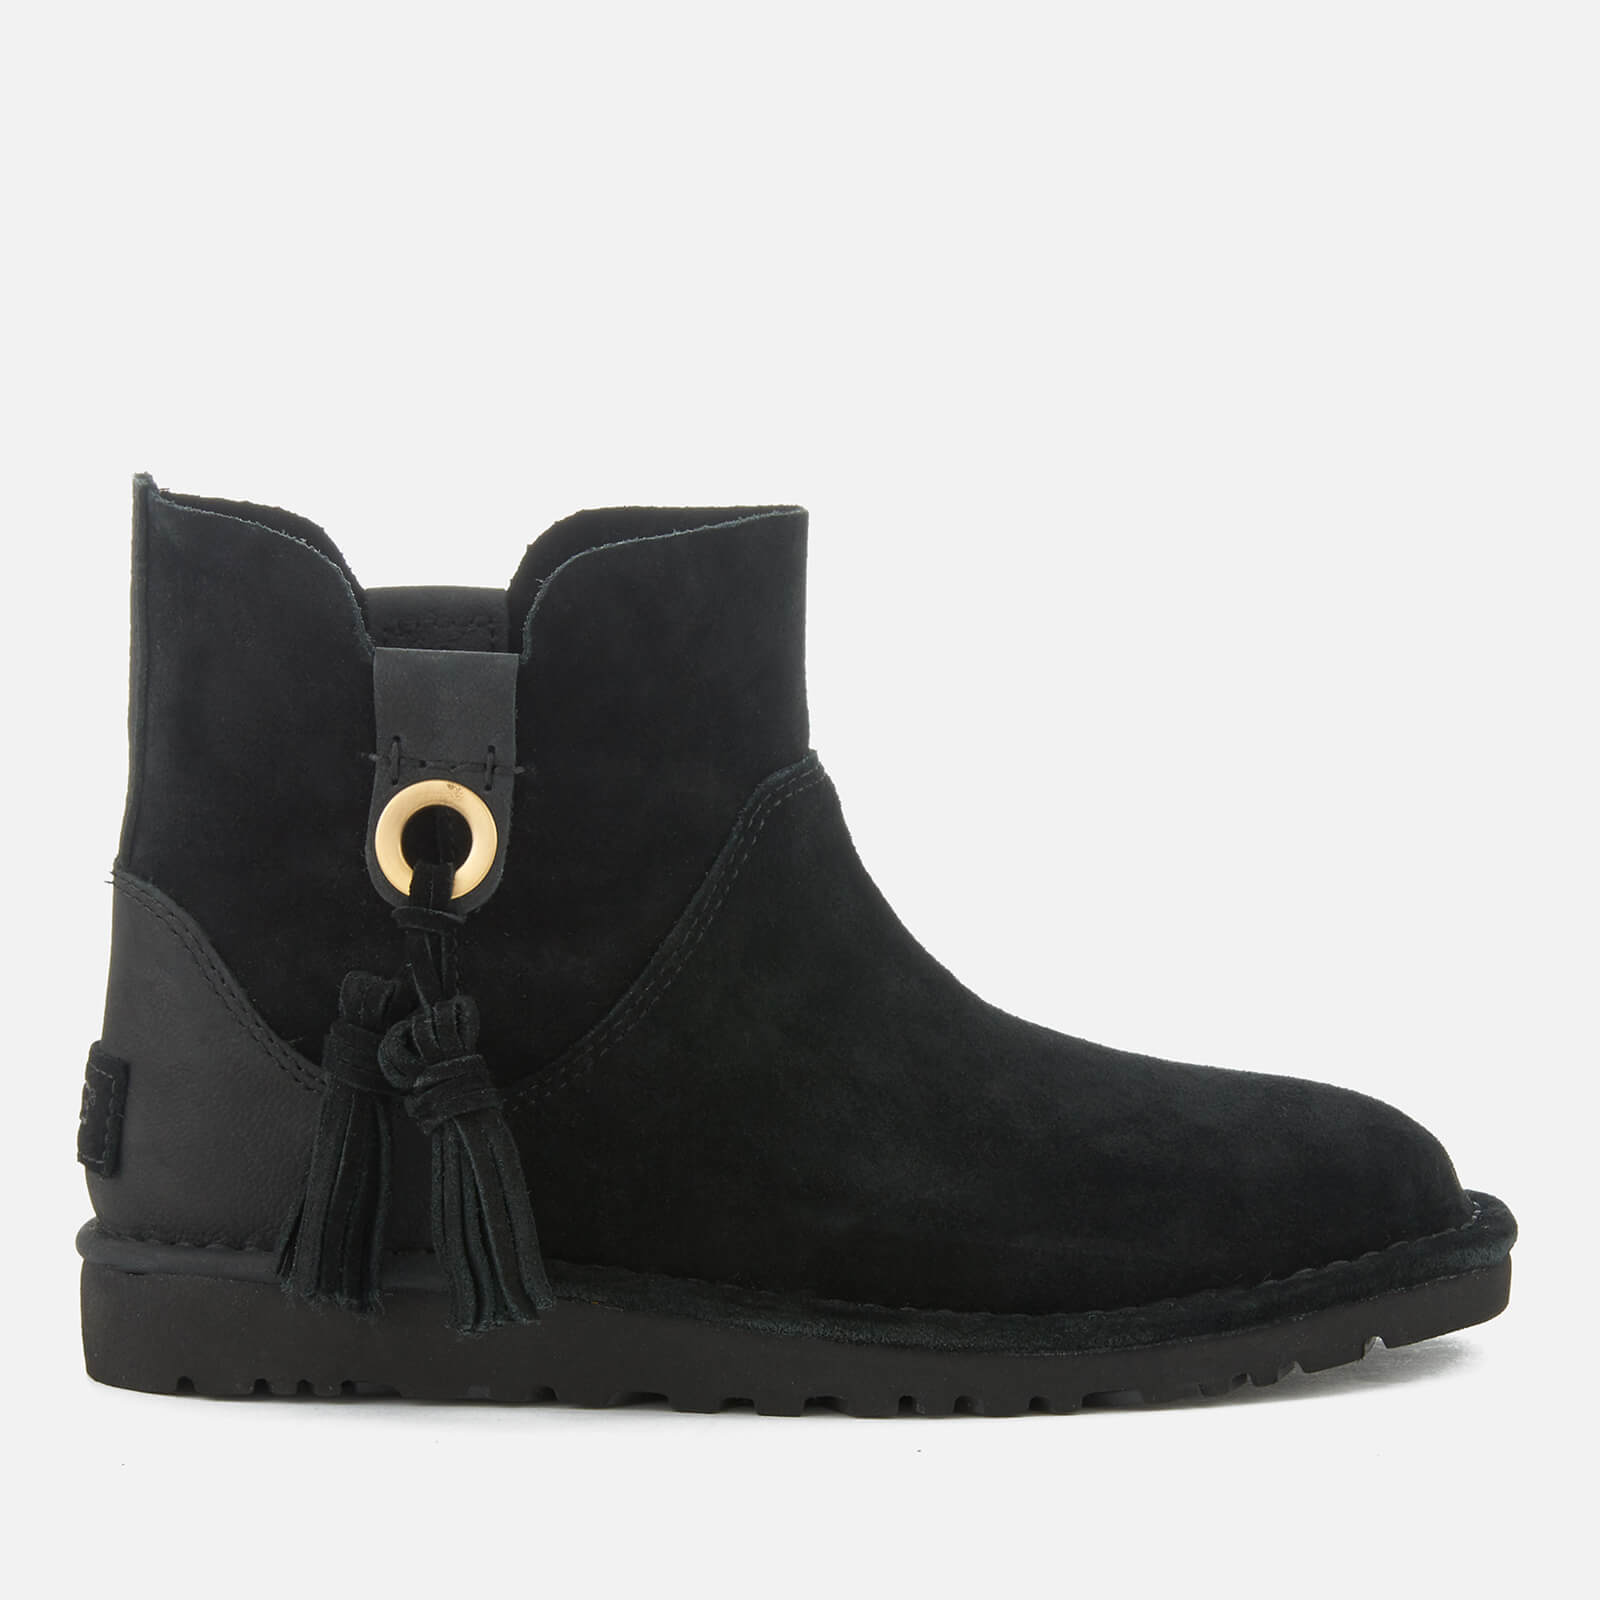 UGG Women's Gib Suede Unlined Ankle Boots Black